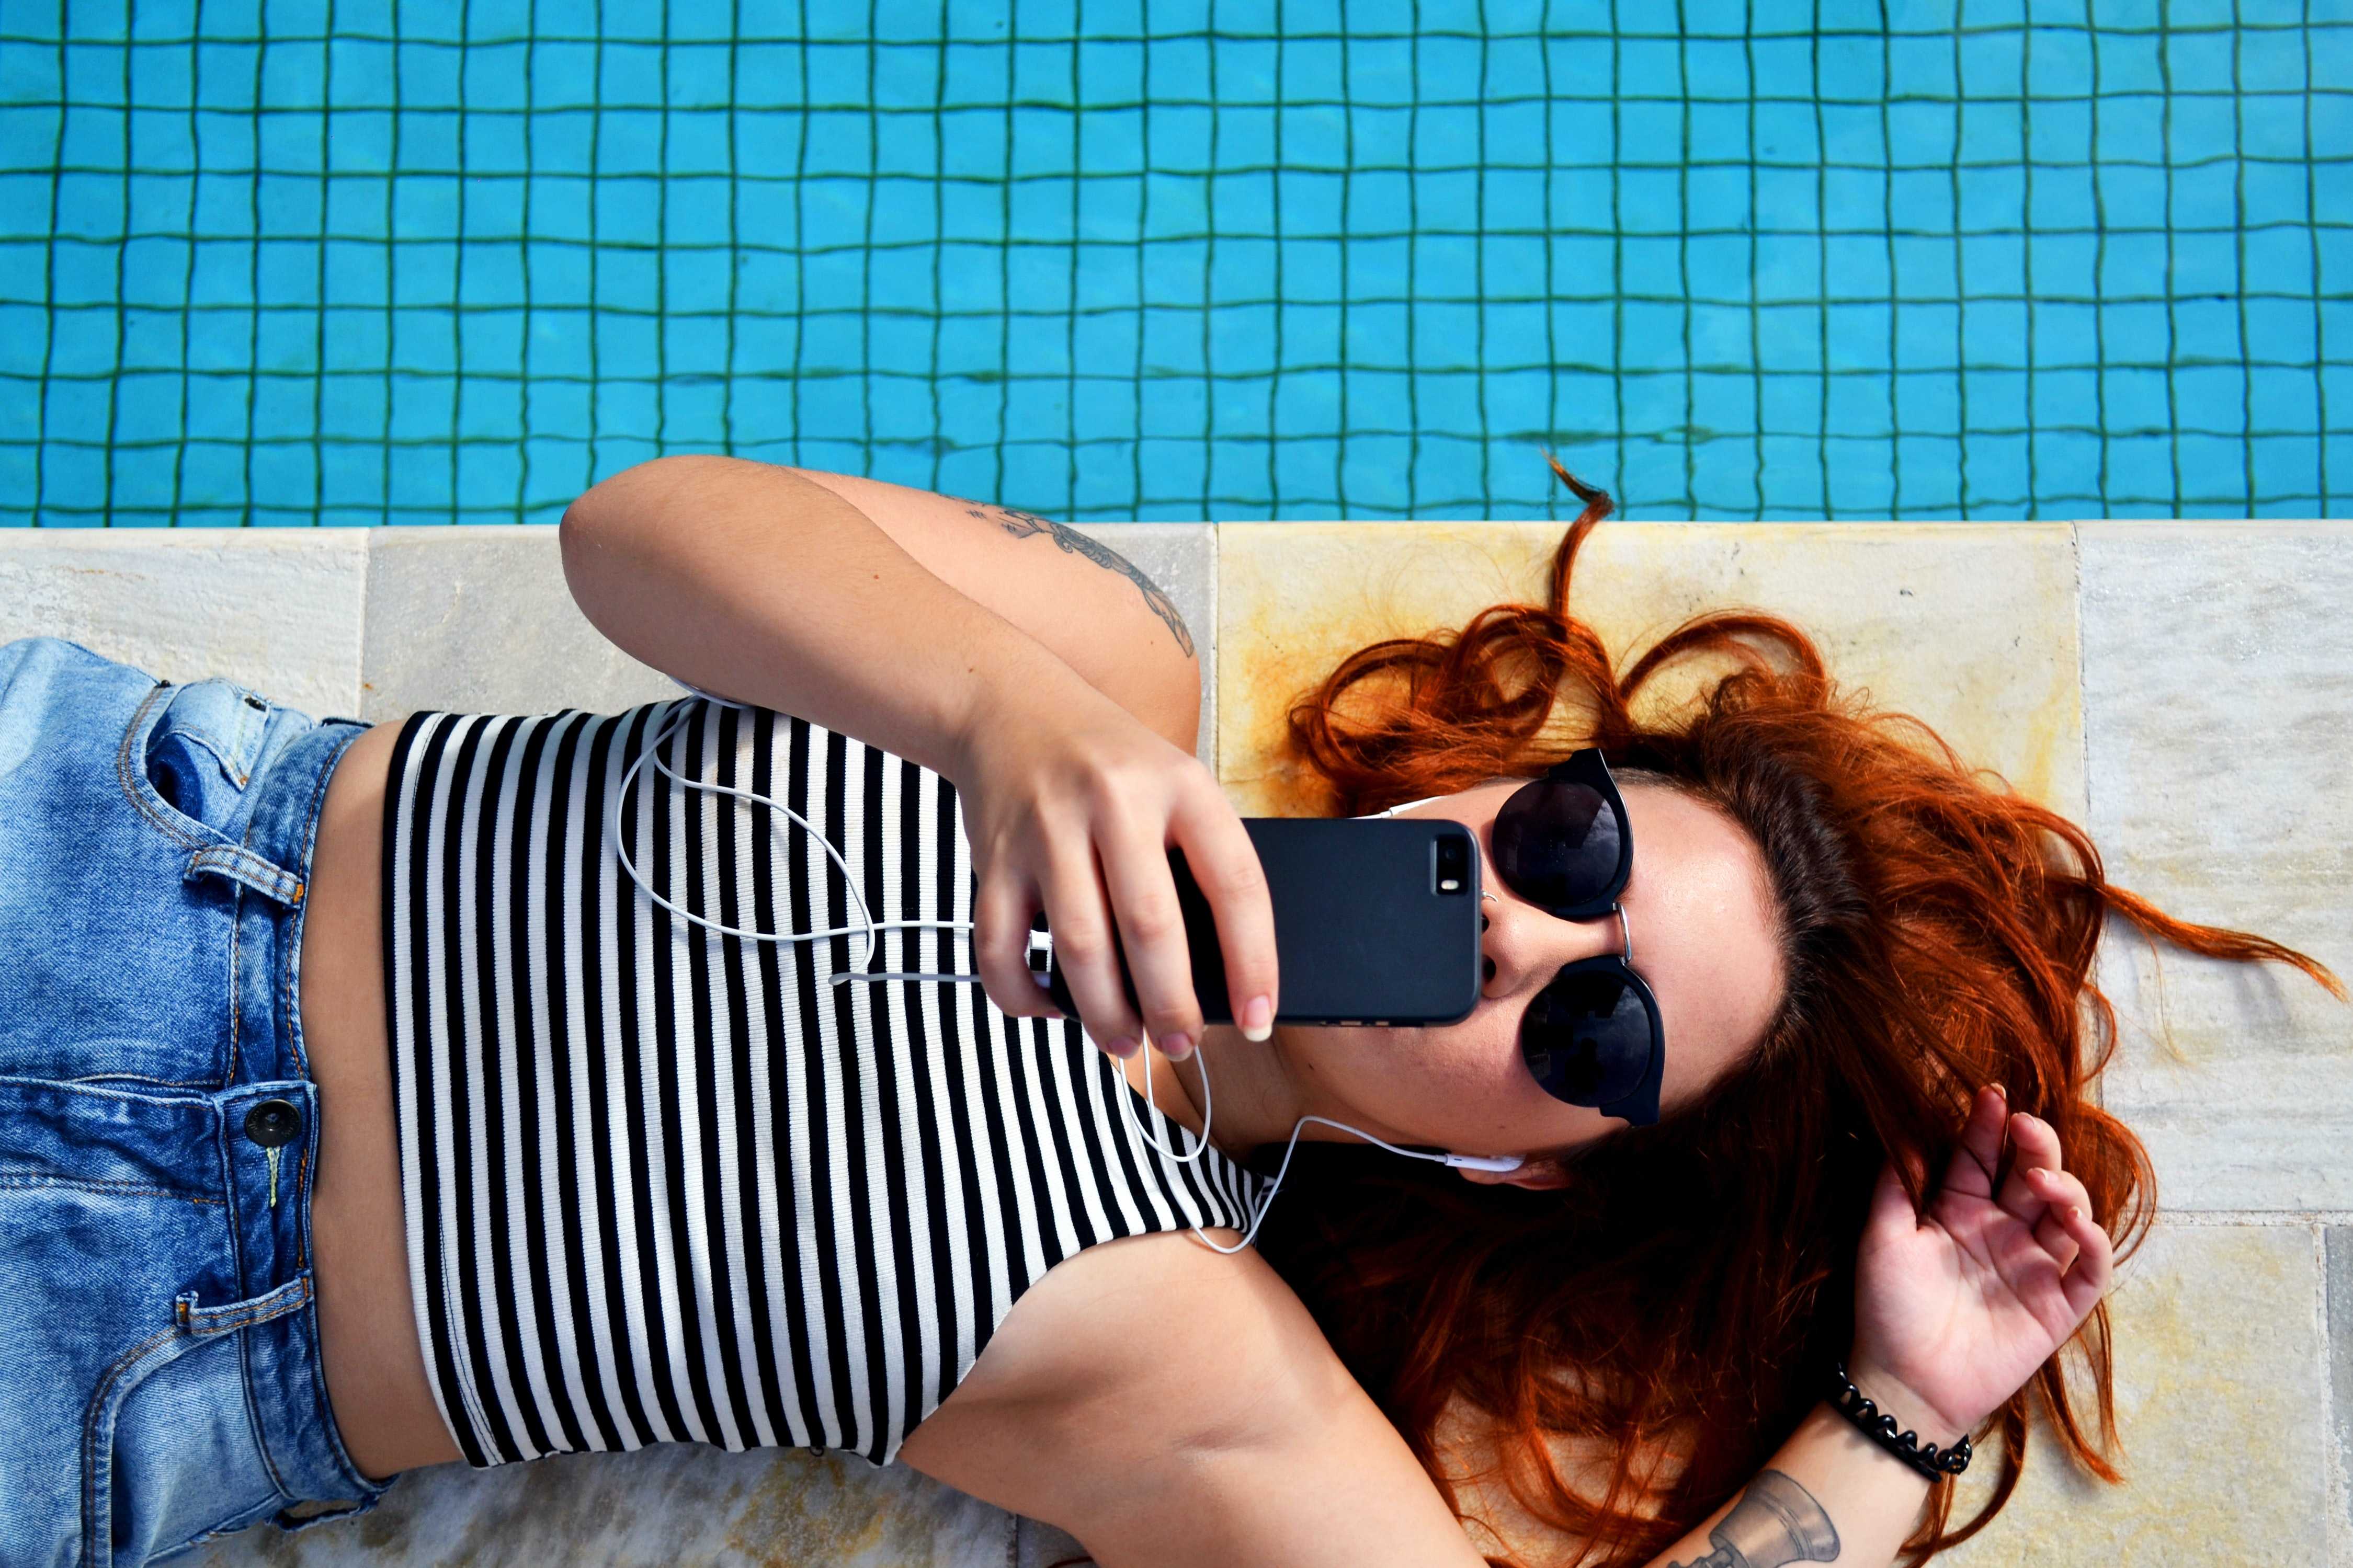 Sunglass wearing woman relaxing near swimmingpool with earphone plugged in iPhone at Sao Paulo